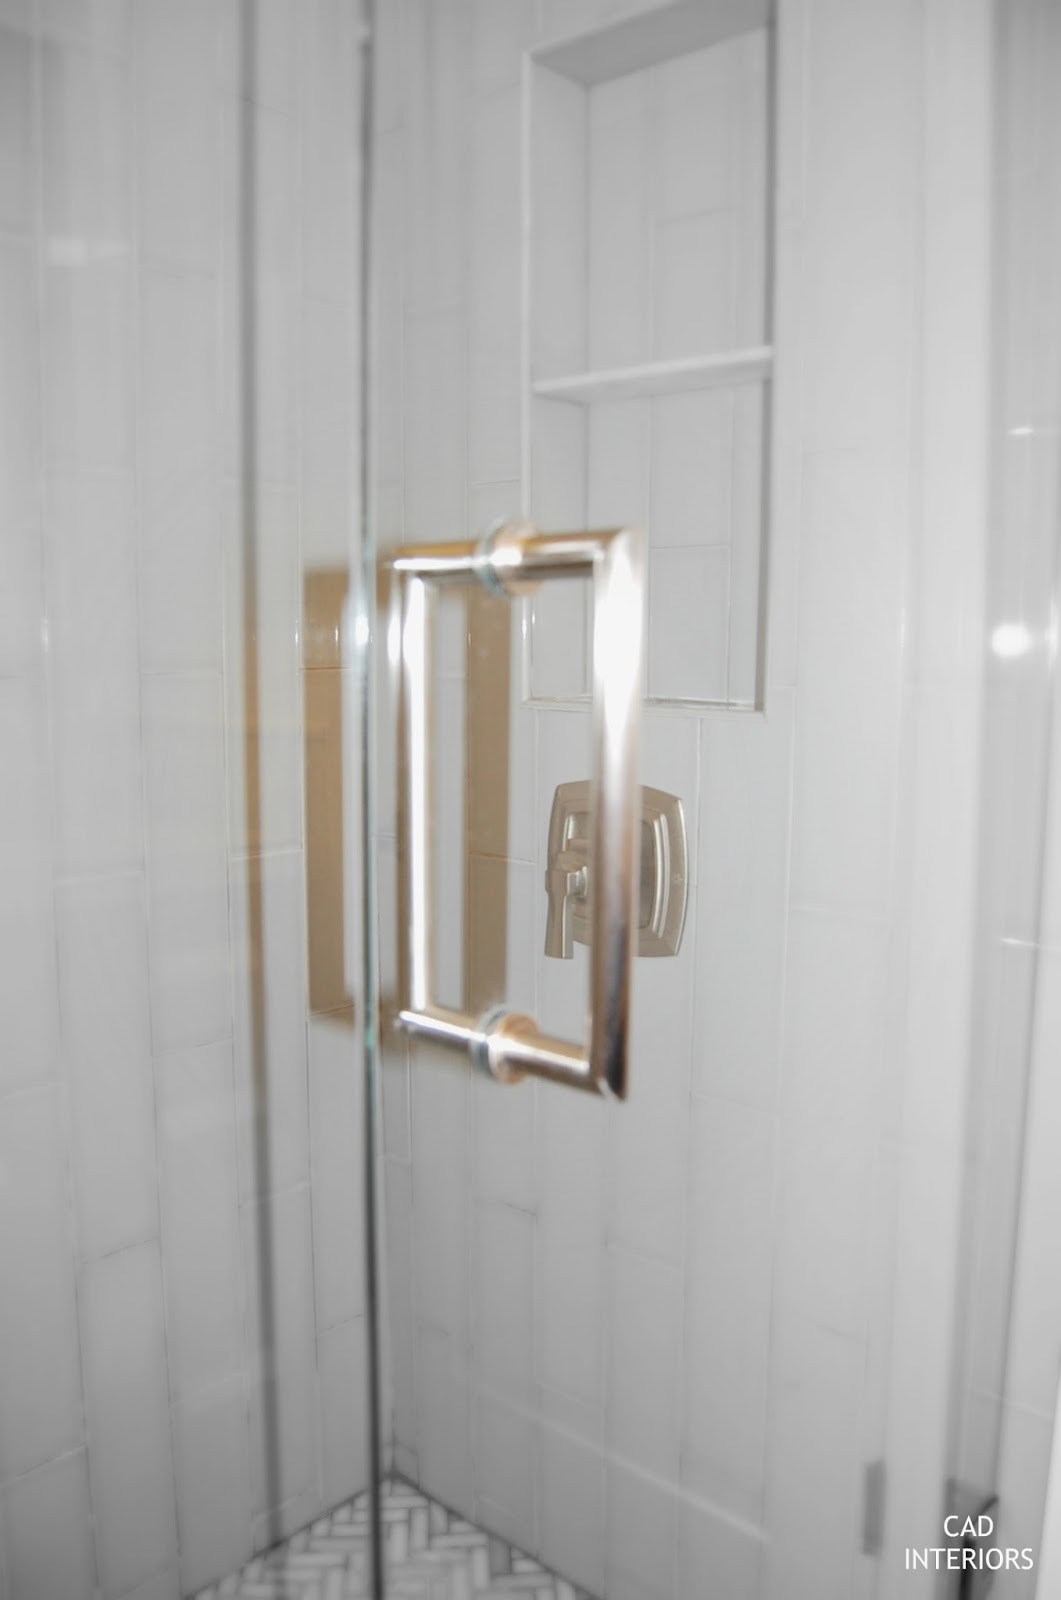 CAD INTERIORS main bathroom renovation custom frameless shower door enclosure fixtures